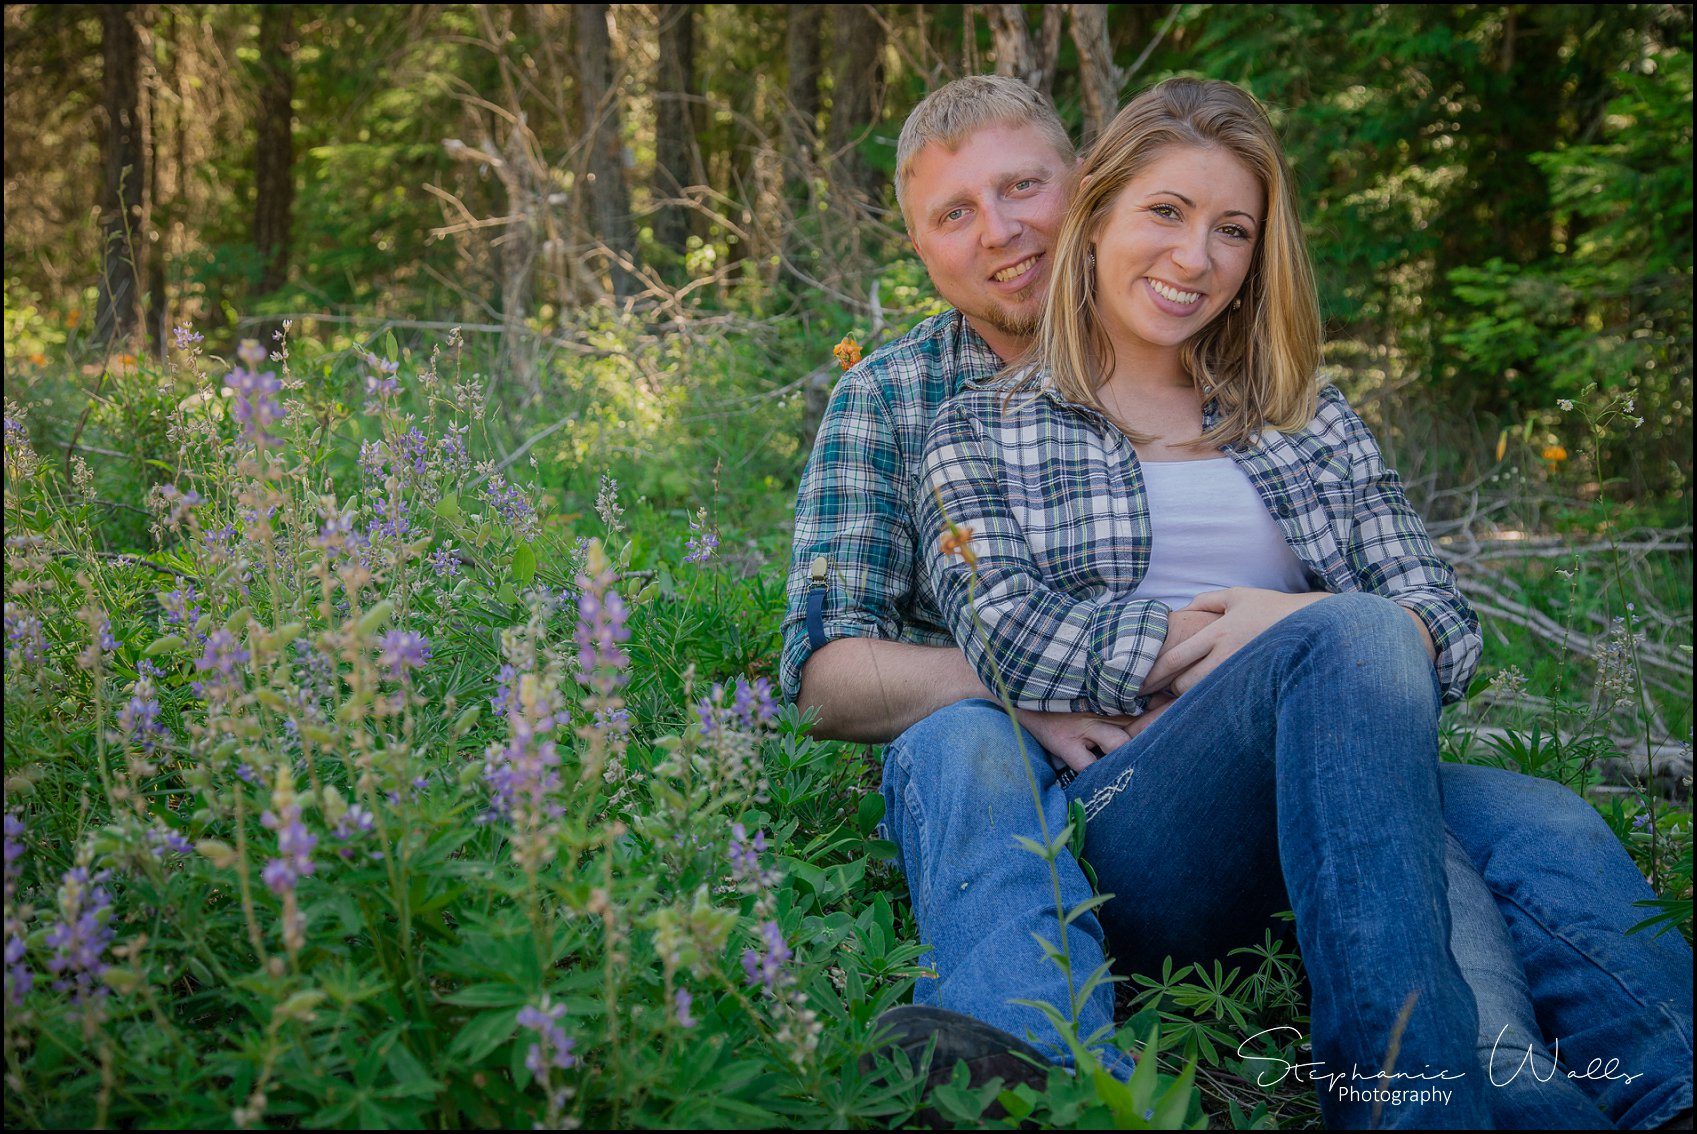 Taylor Jessie079 TAYLOR & JESSE | EASTON, WA ENGAGEMENT SESSION { SNOHOMISH WEDDING PHOTOGRAPHER }